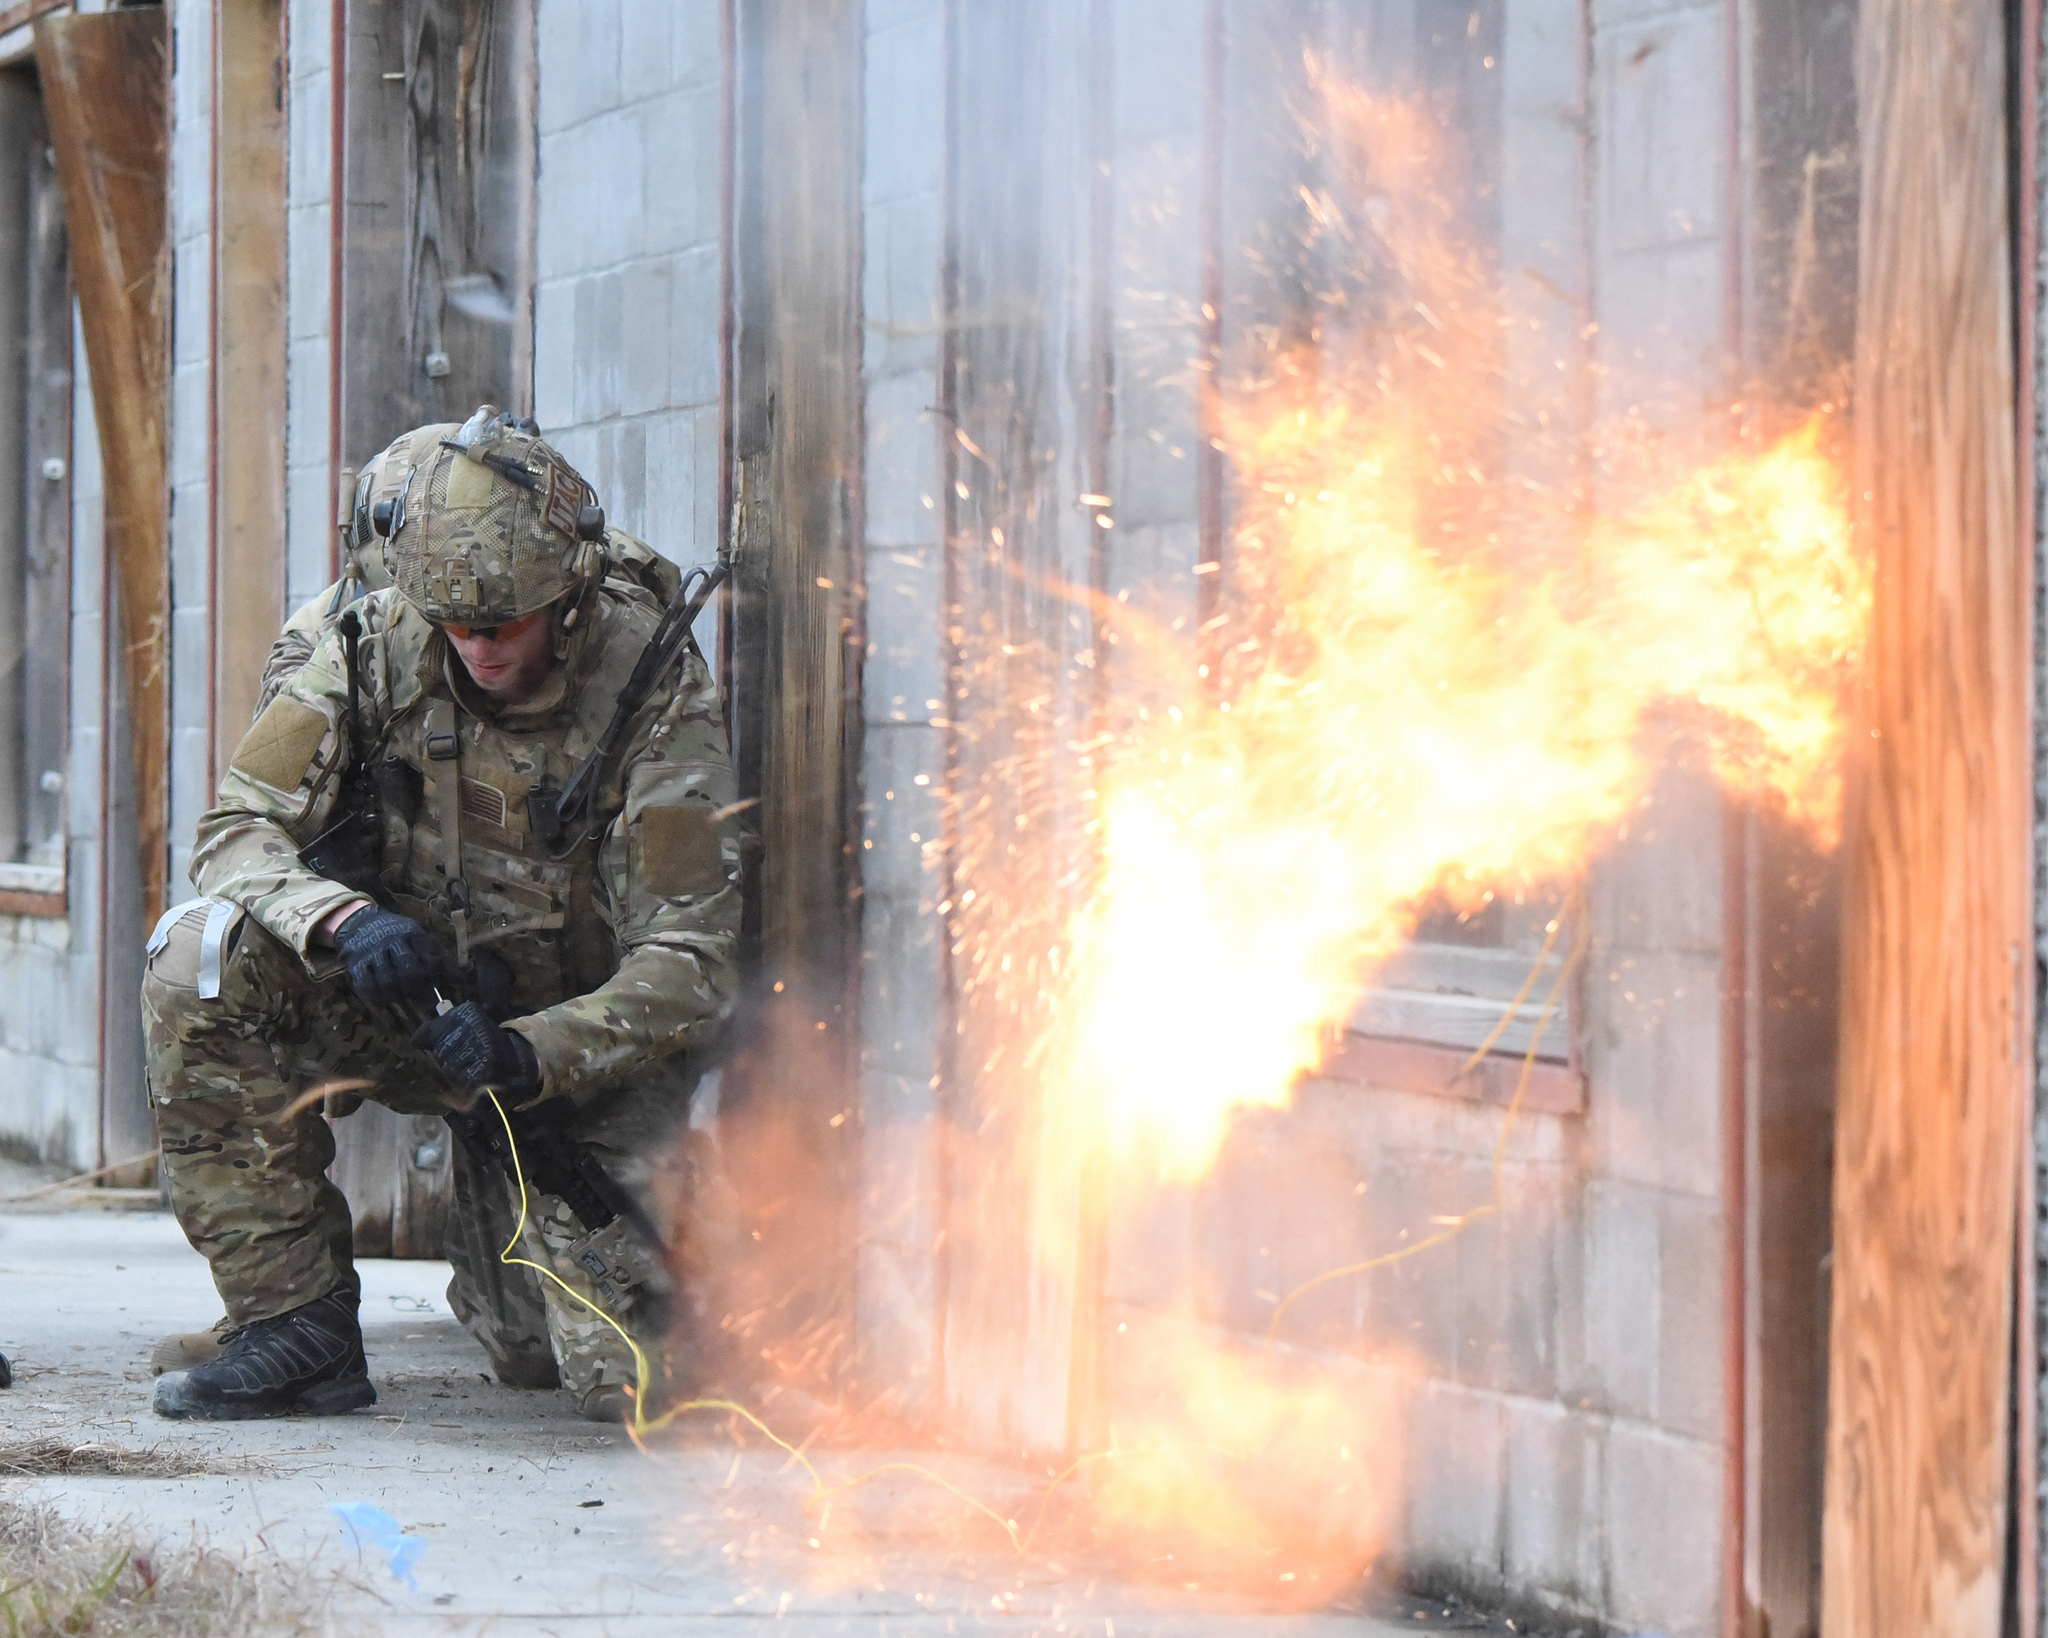 A tactical air control party airman detonates an explosive tool mounted on a door as an explosives ordnance technician provides support as they prepare to breach a door during exercise Southern Strike 19 at Camp Shelby Joint Forces Training Center near Hattiesburg, Miss., Jan. 18, 2019. (Chief Master Sgt. David H. Lipp/Air National Guard)